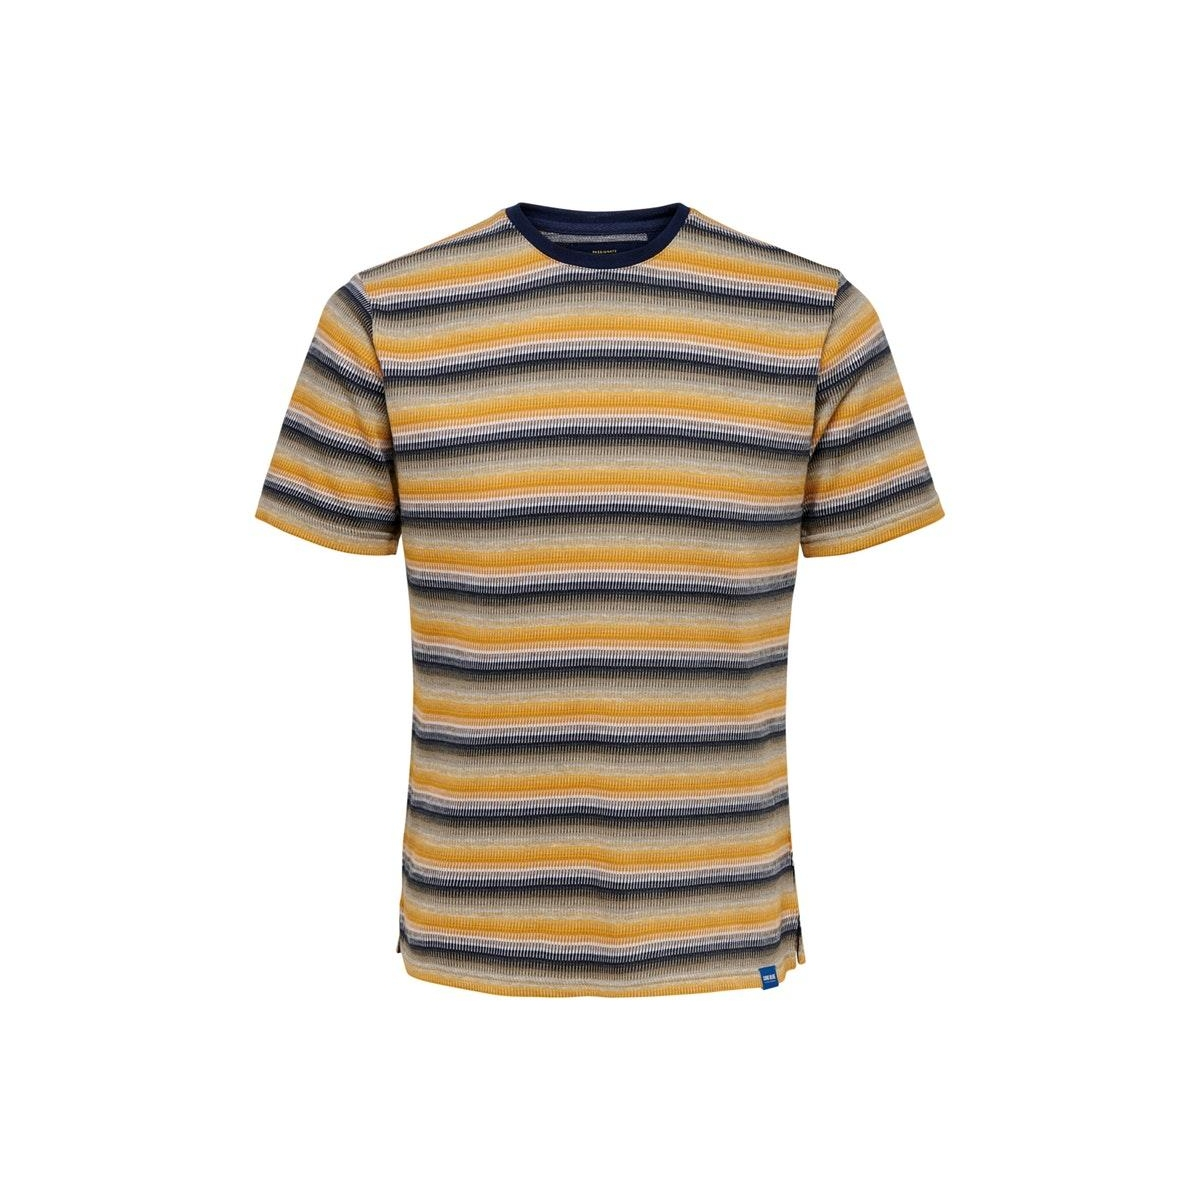 onscaden life x-slim  tee ce  6208 22016208 only & sons t-shirt misted yellow